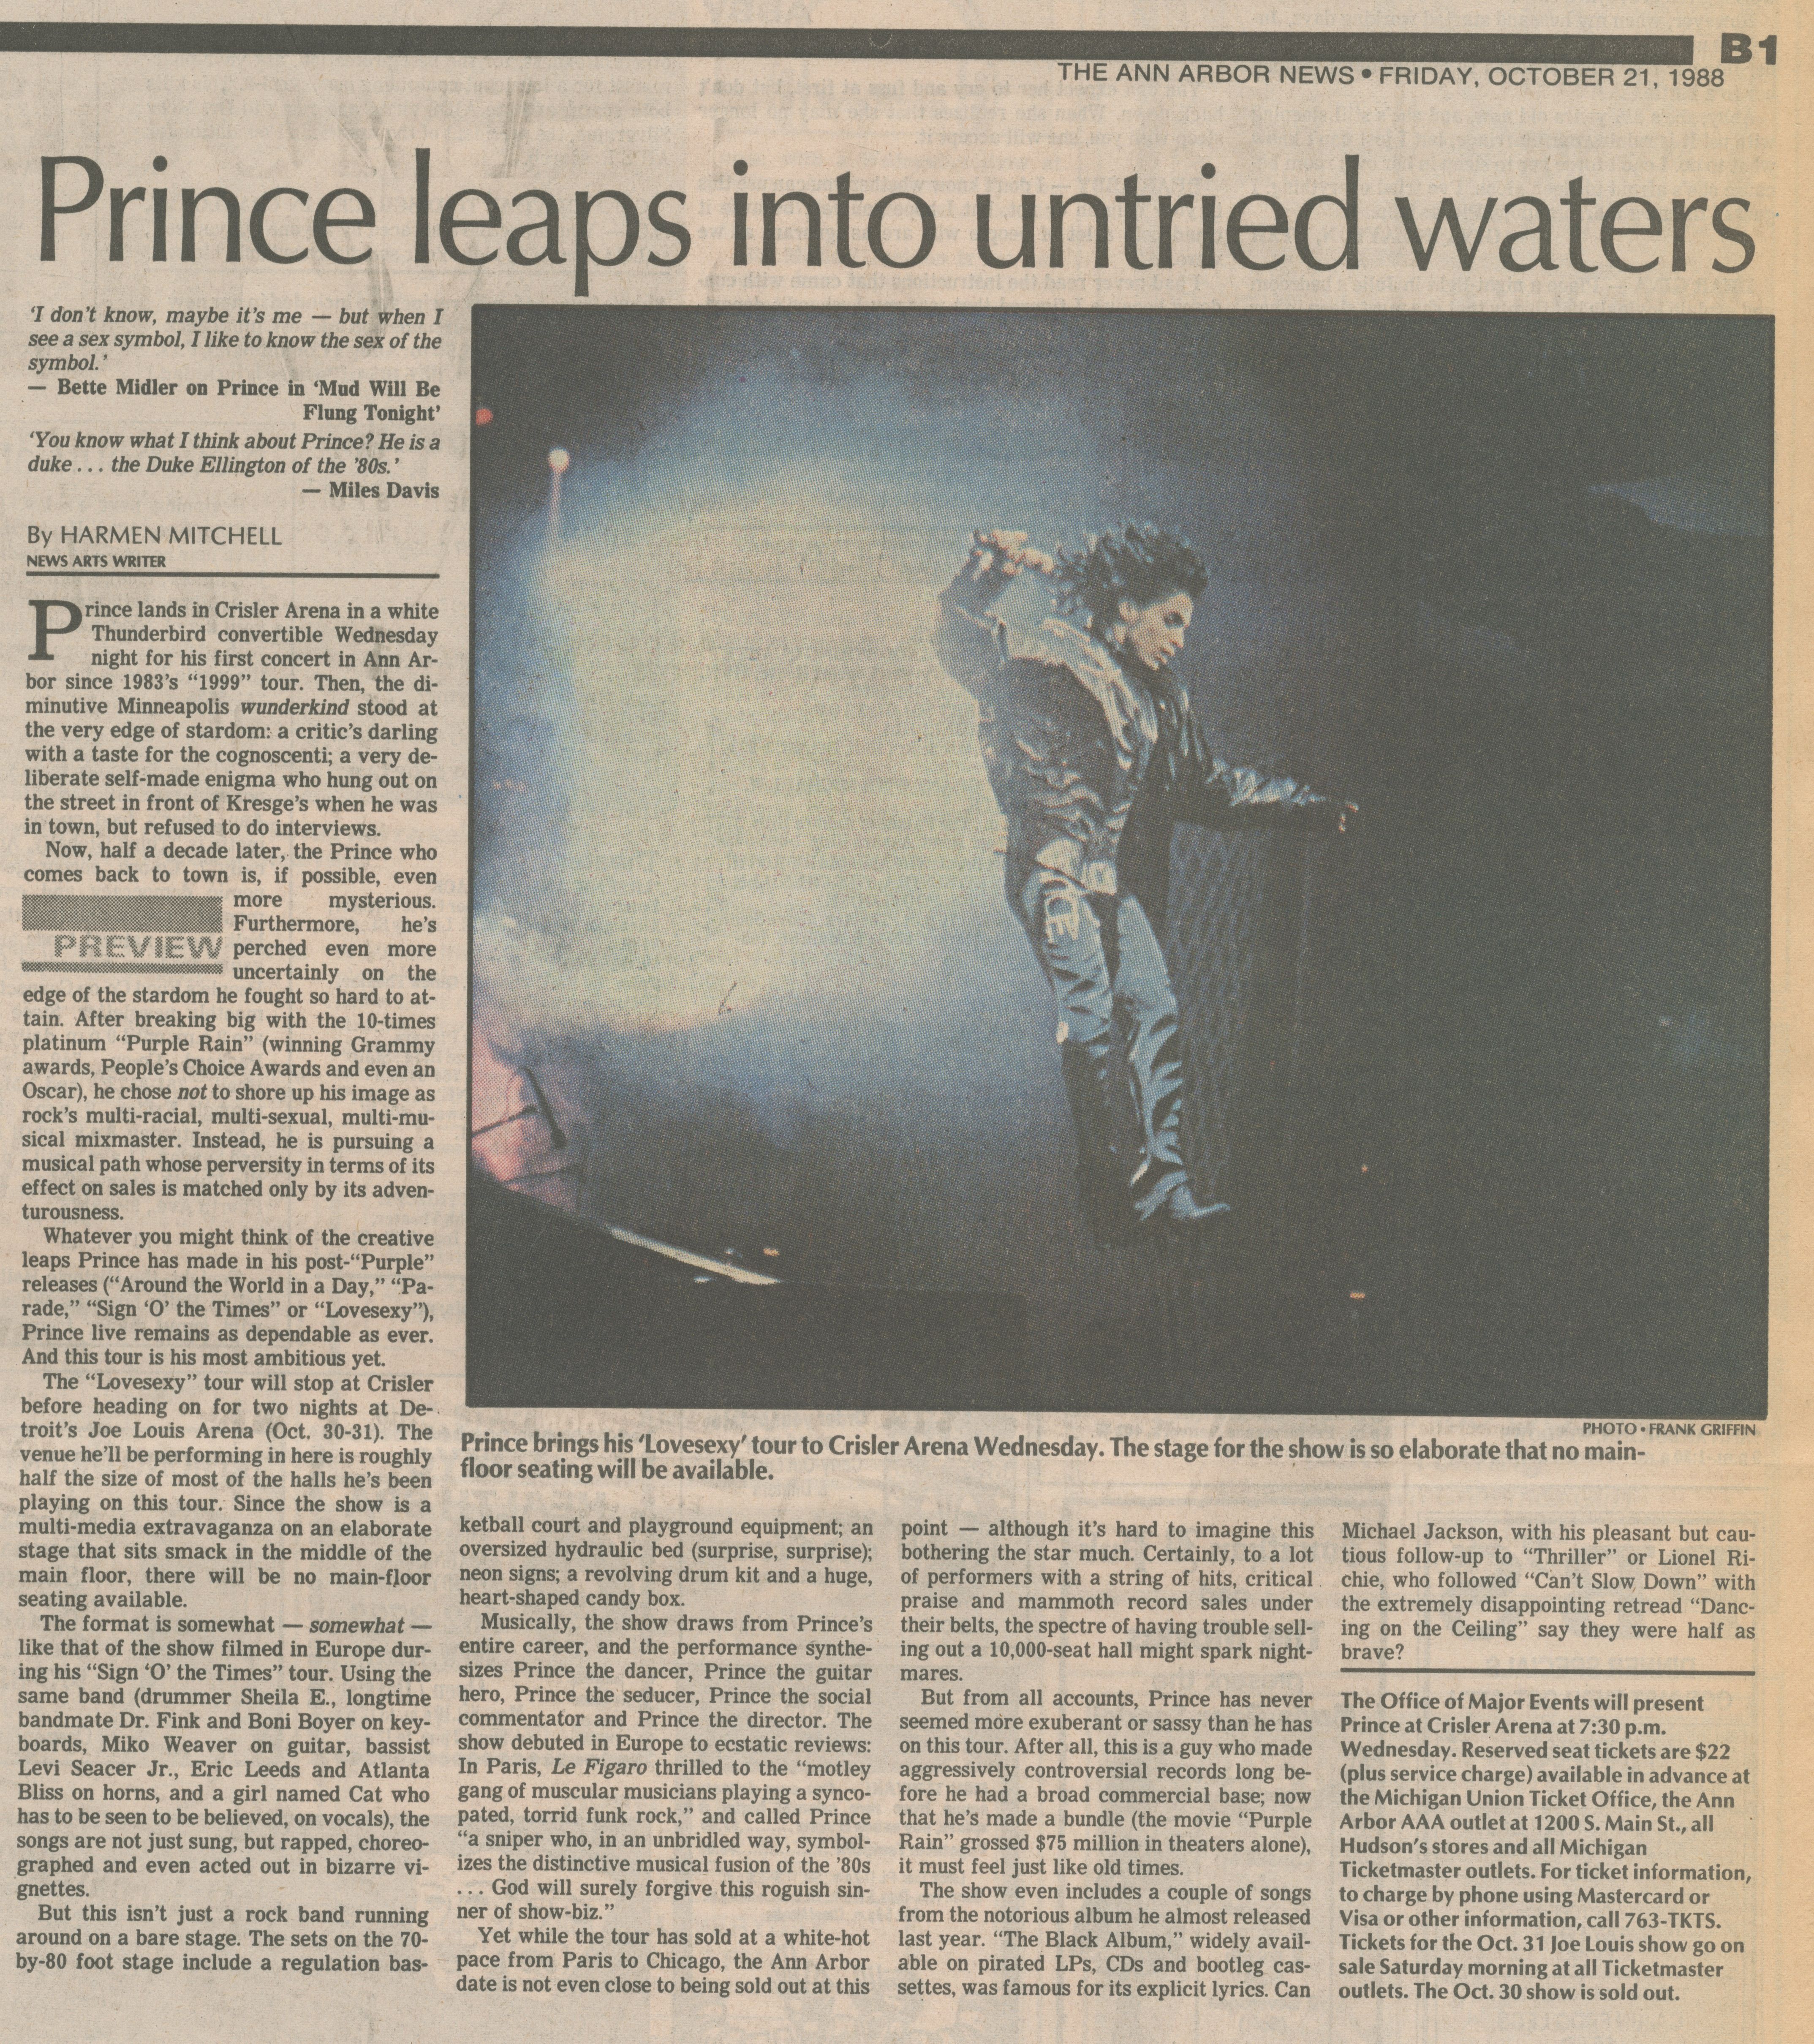 Prince leaps into untried waters image